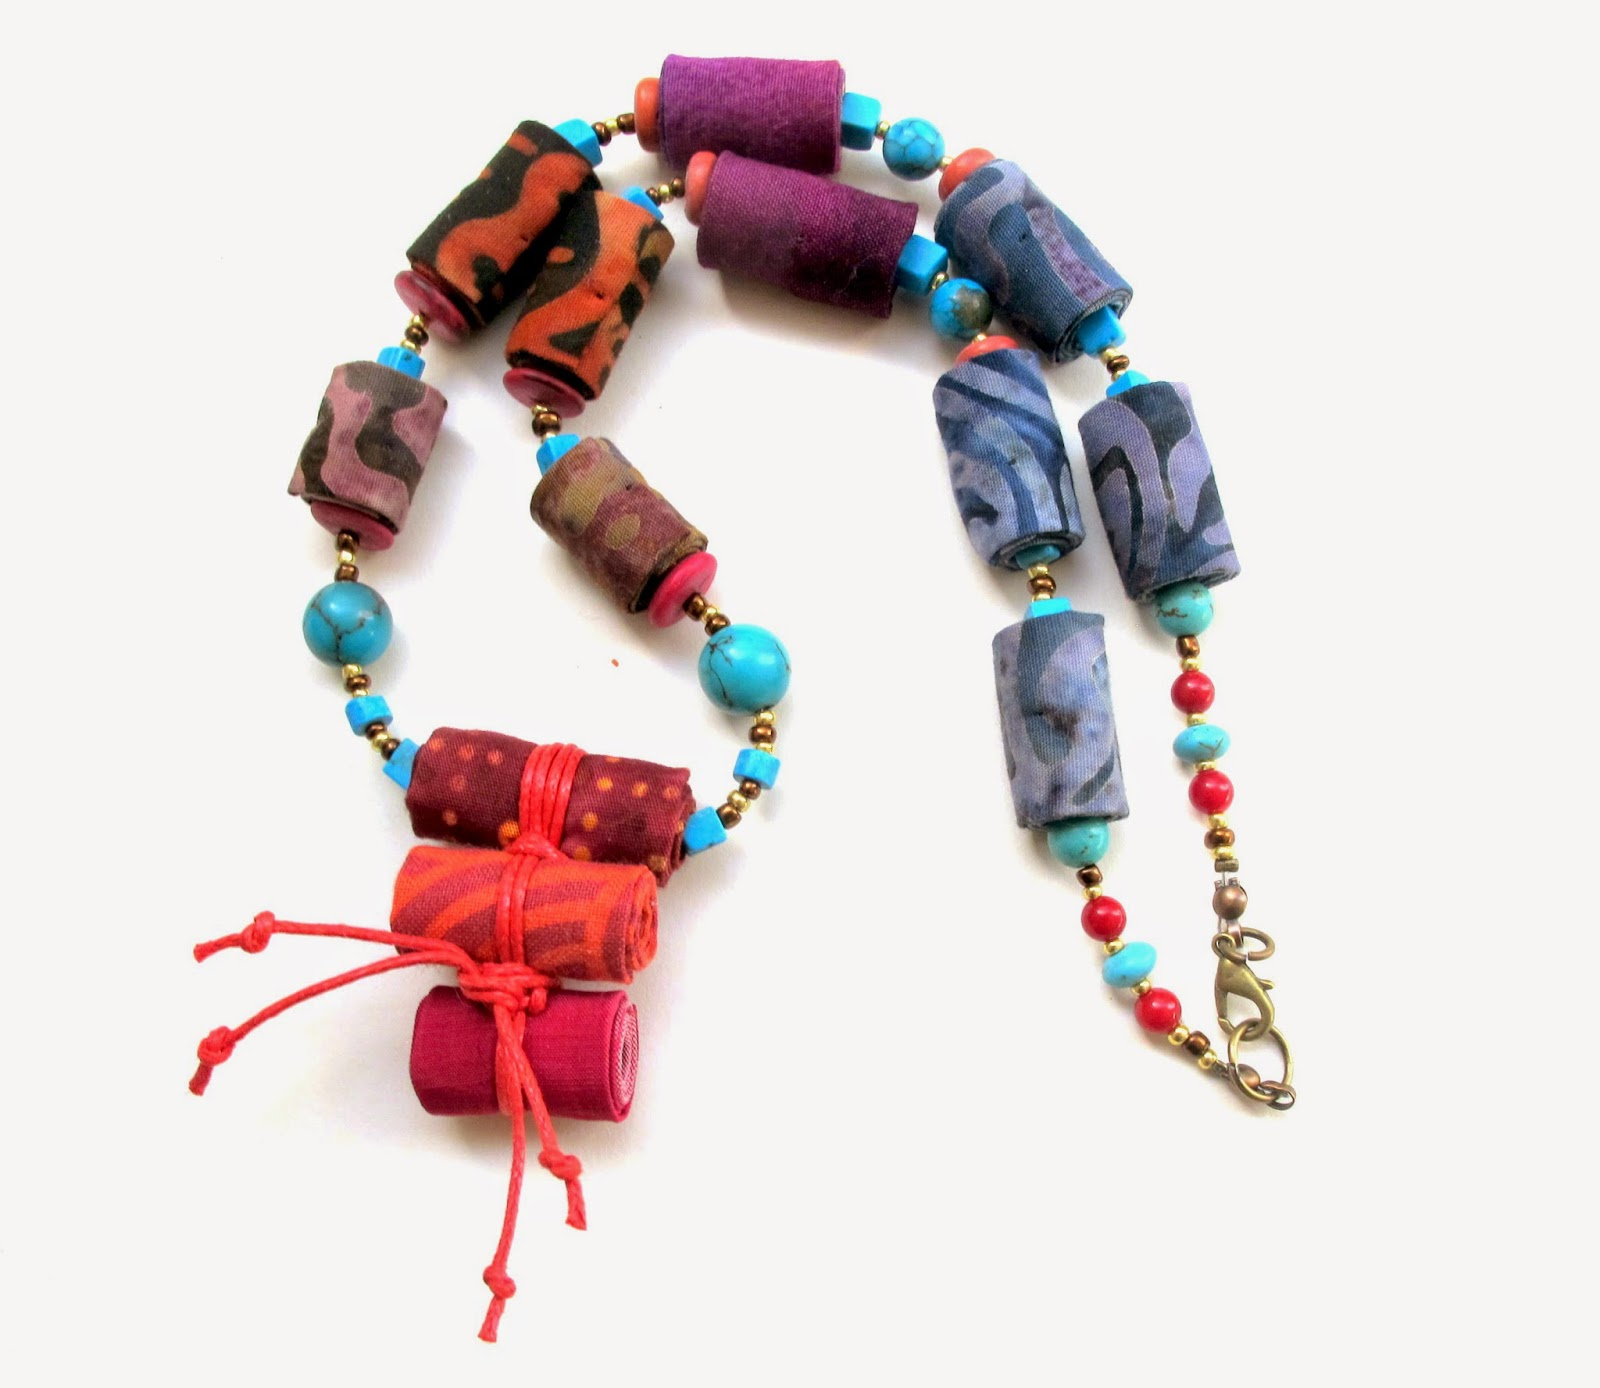 bugels fiber multi beyond products textile recycled bugles threads necklace